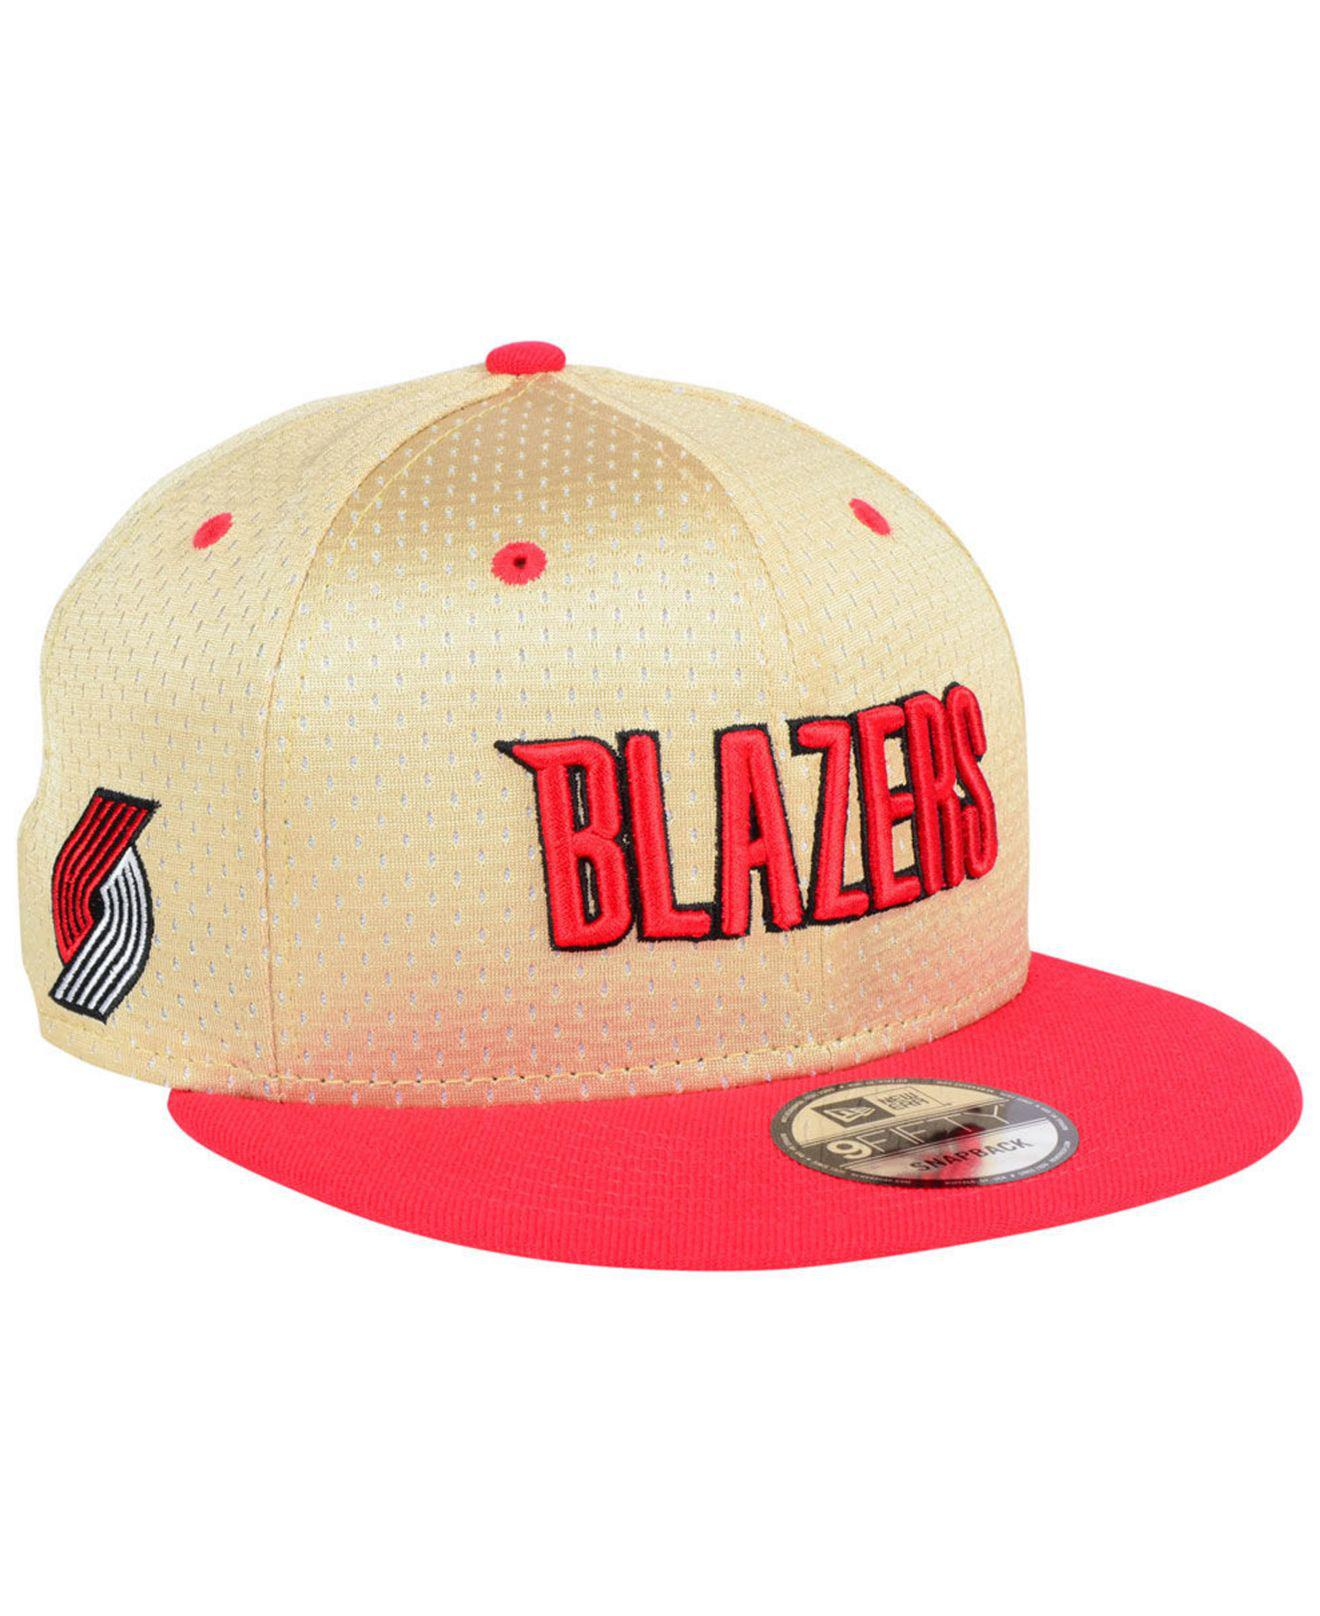 finest selection e2ac6 8aa32 ... denmark ktz. mens red portland trail blazers champagne 9fifty snapback  cap 22210 7cfd4